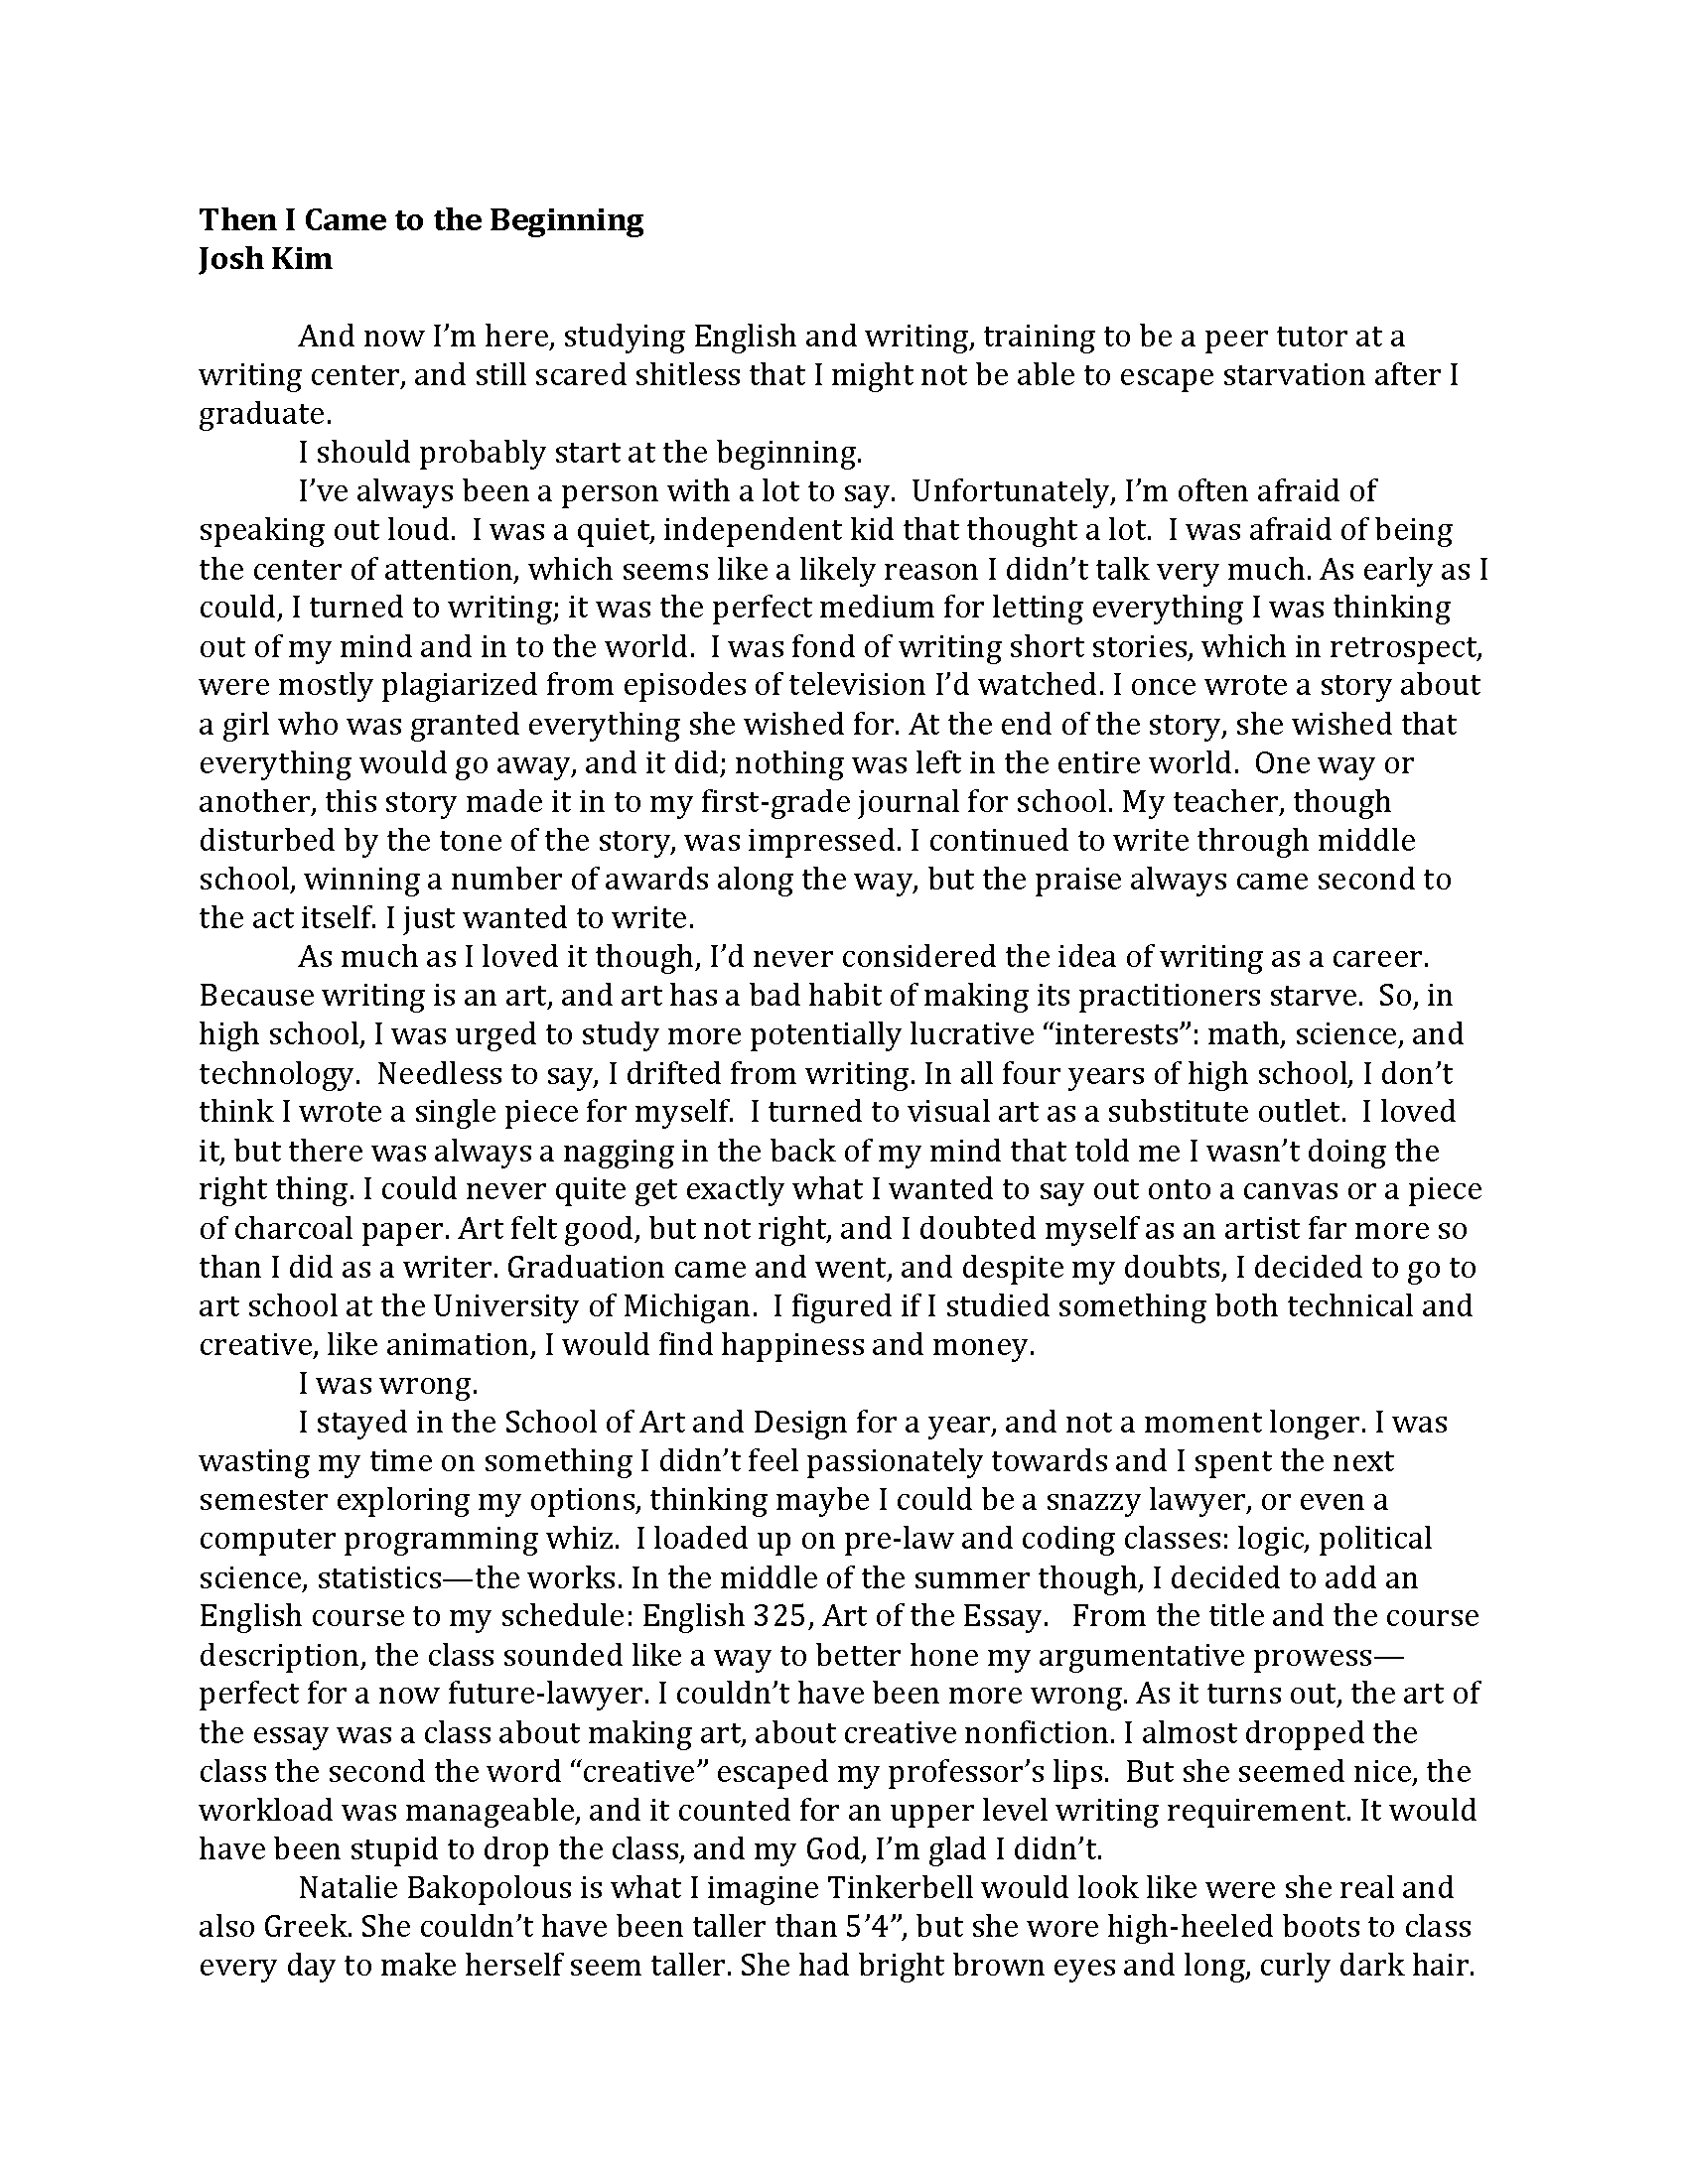 All About Myself Essays In English In Written